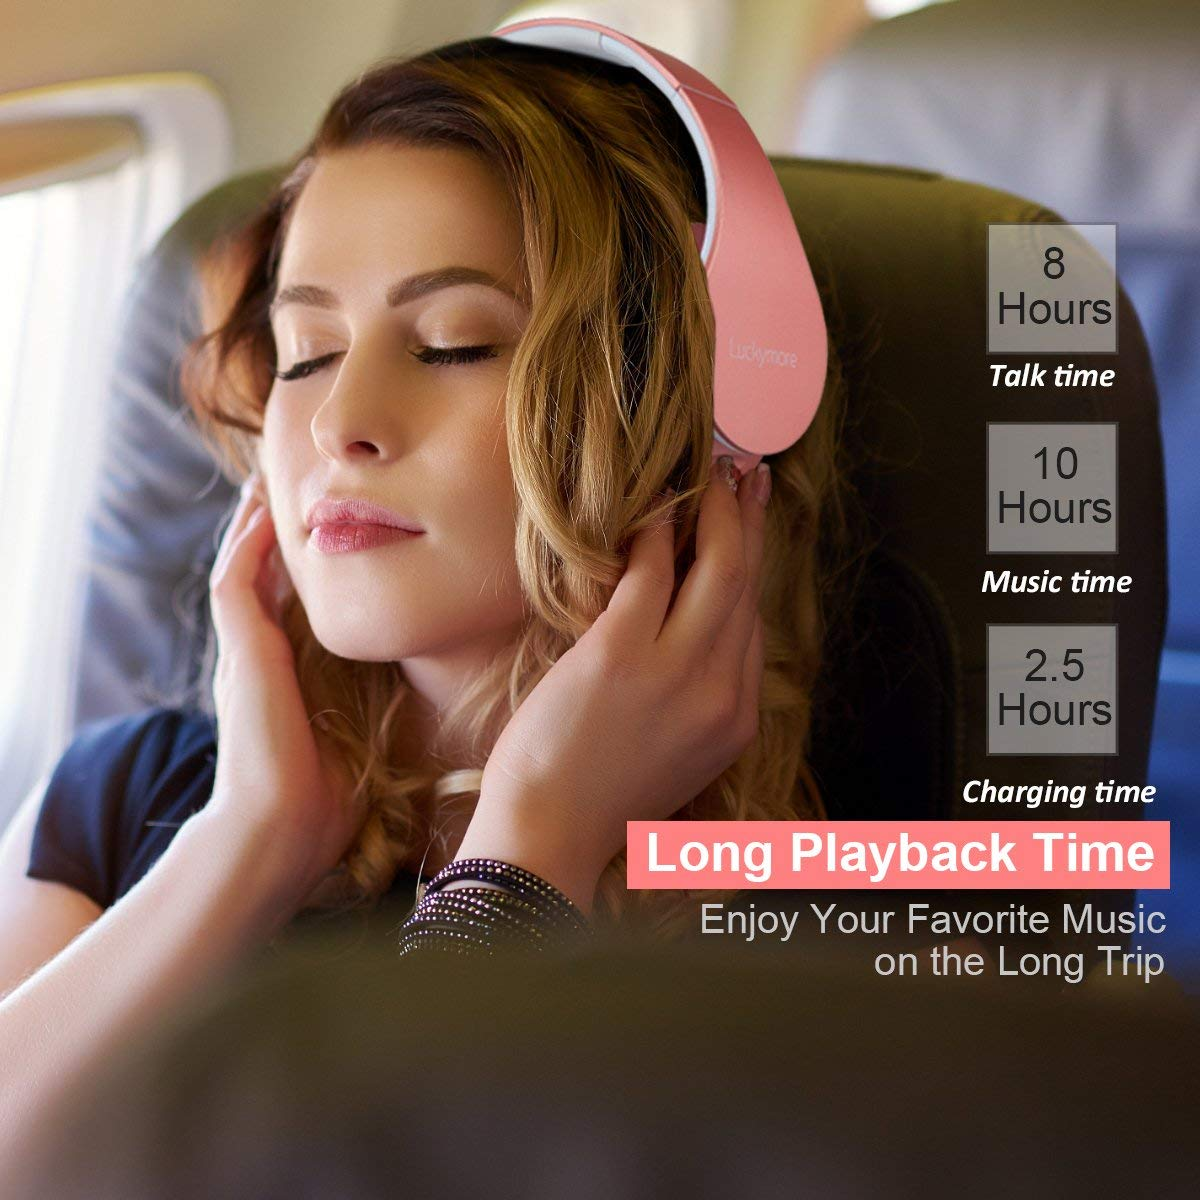 Bluetooth Headphones Over Ear, Foldable Wireless Headphones Stereo Hi-Fi Bluetooth Headsets with Bass, Mic and Soft Earmuffs for Girl Women Wired Mode Cell Phone TV Computer Laptop Android Rose Gold